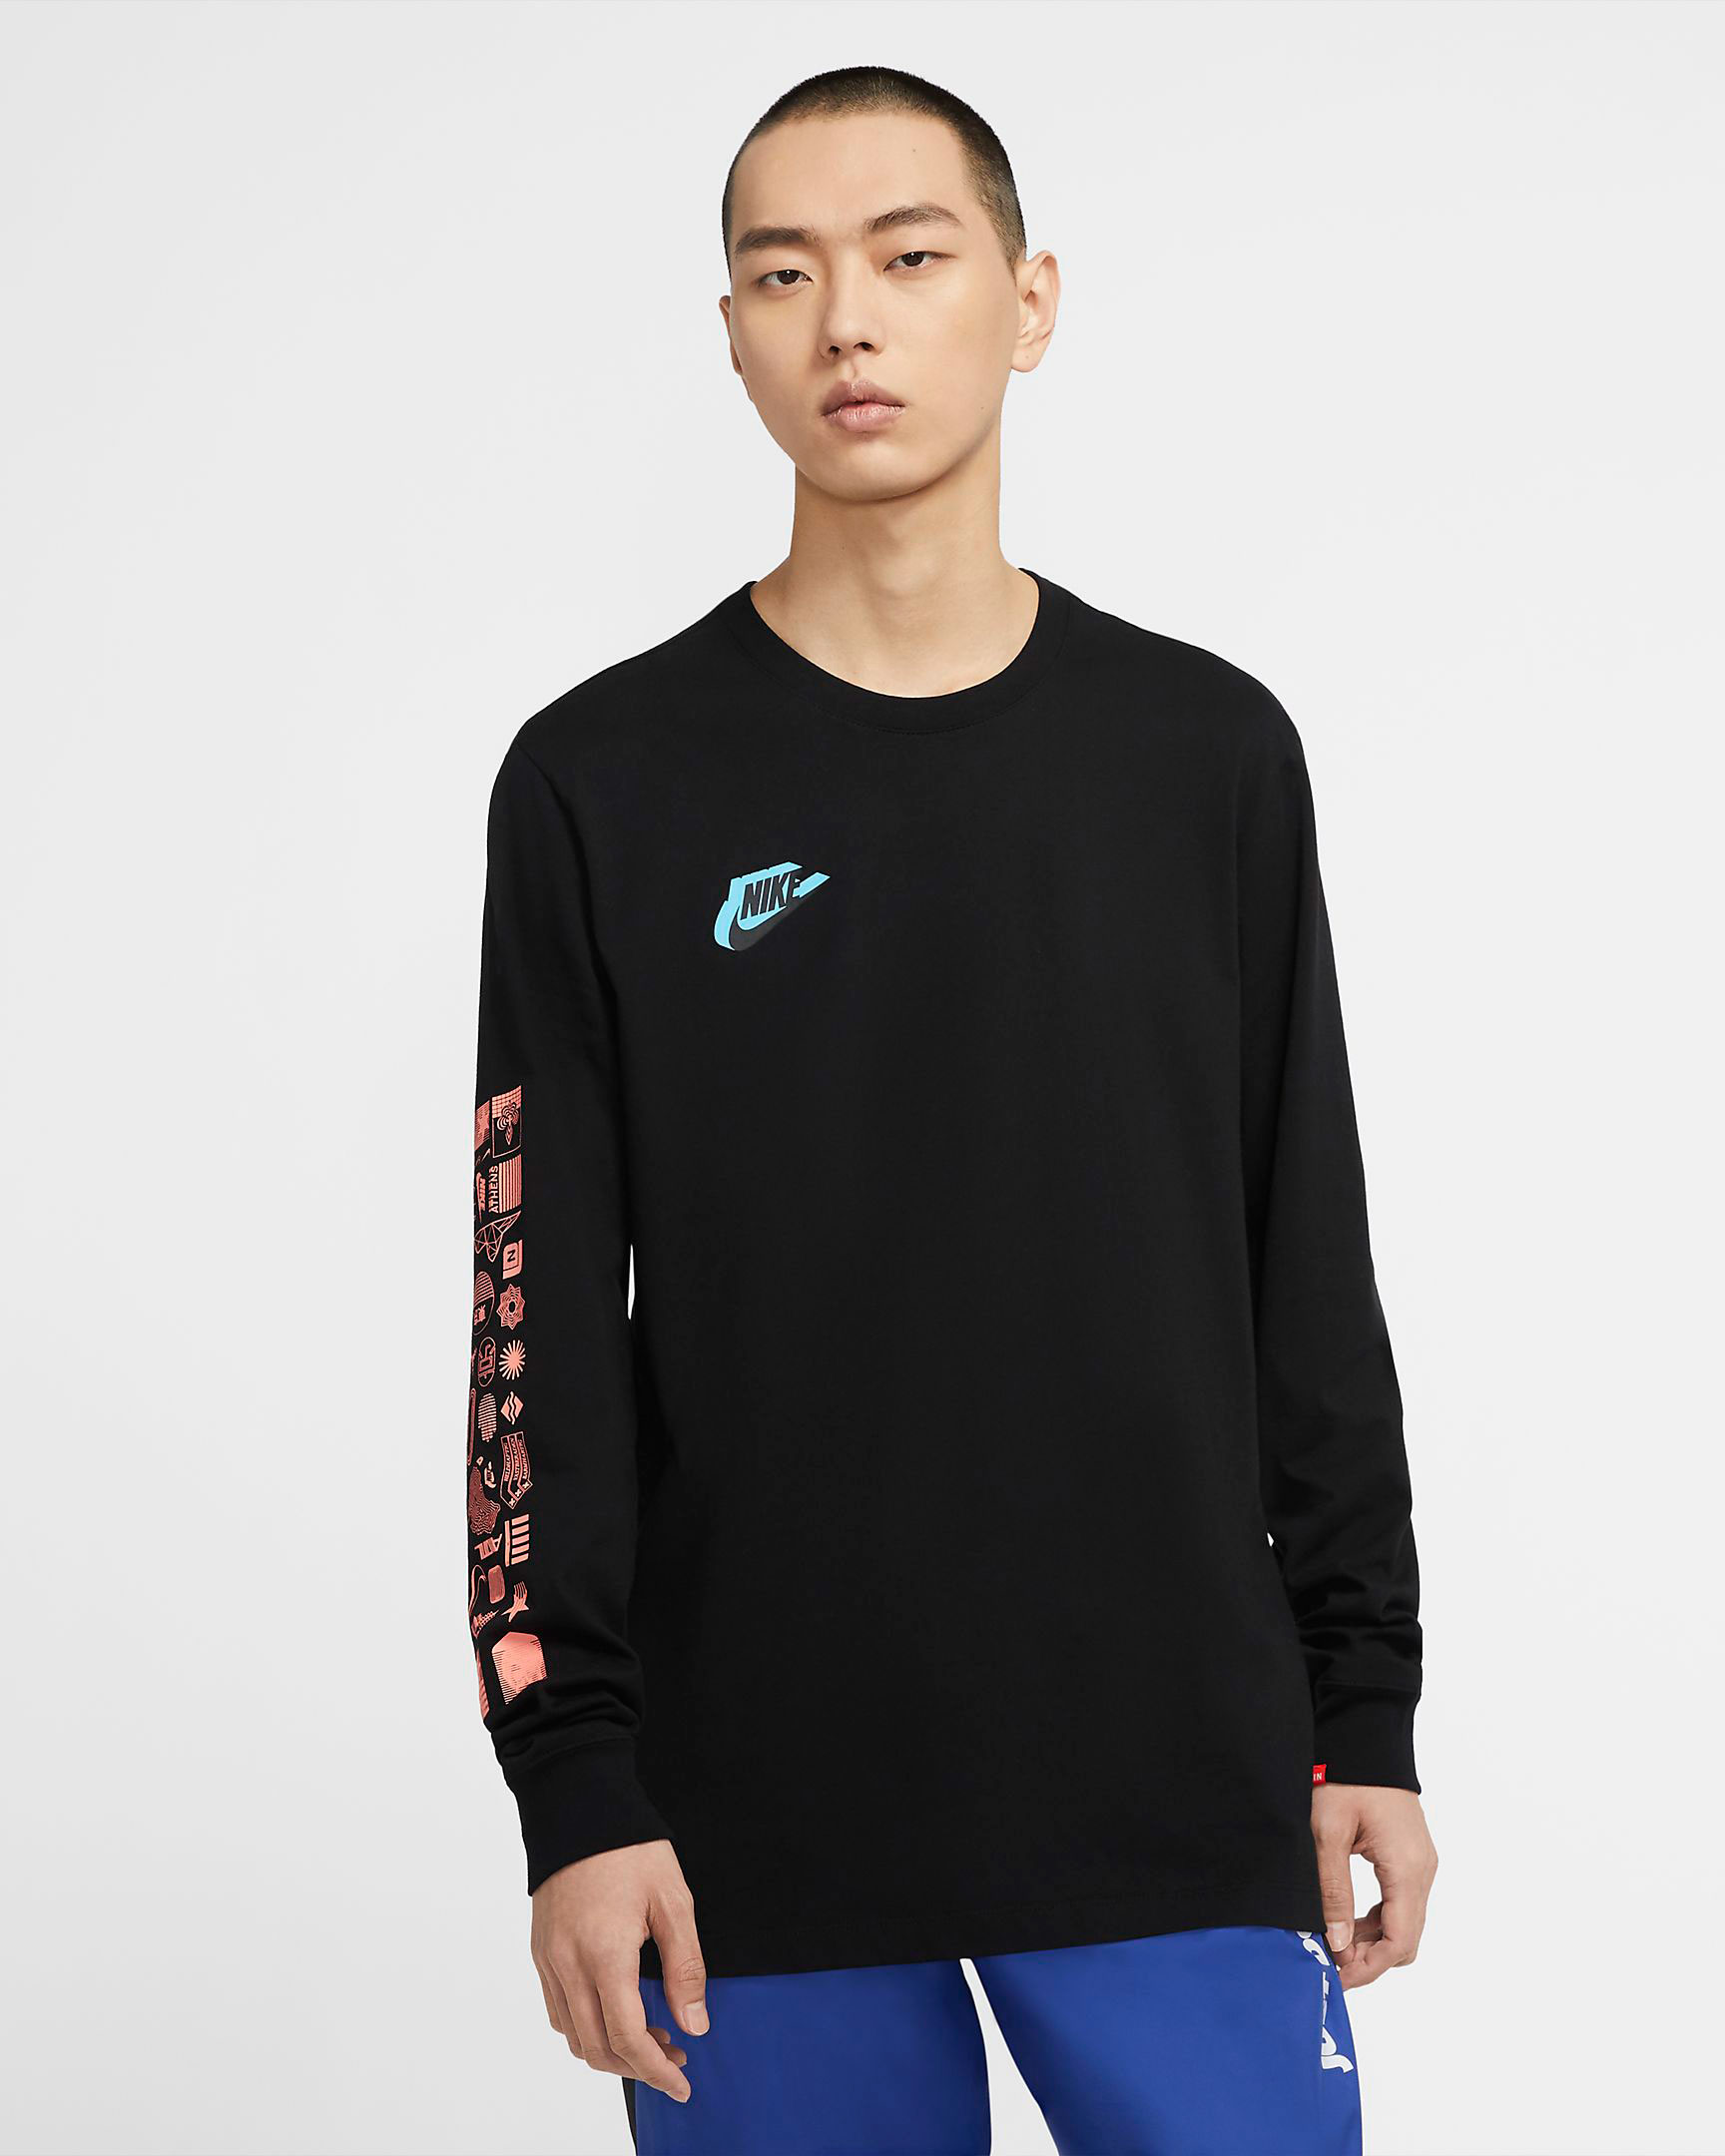 nike-worldwide-long-sleeve-shirt-black-1